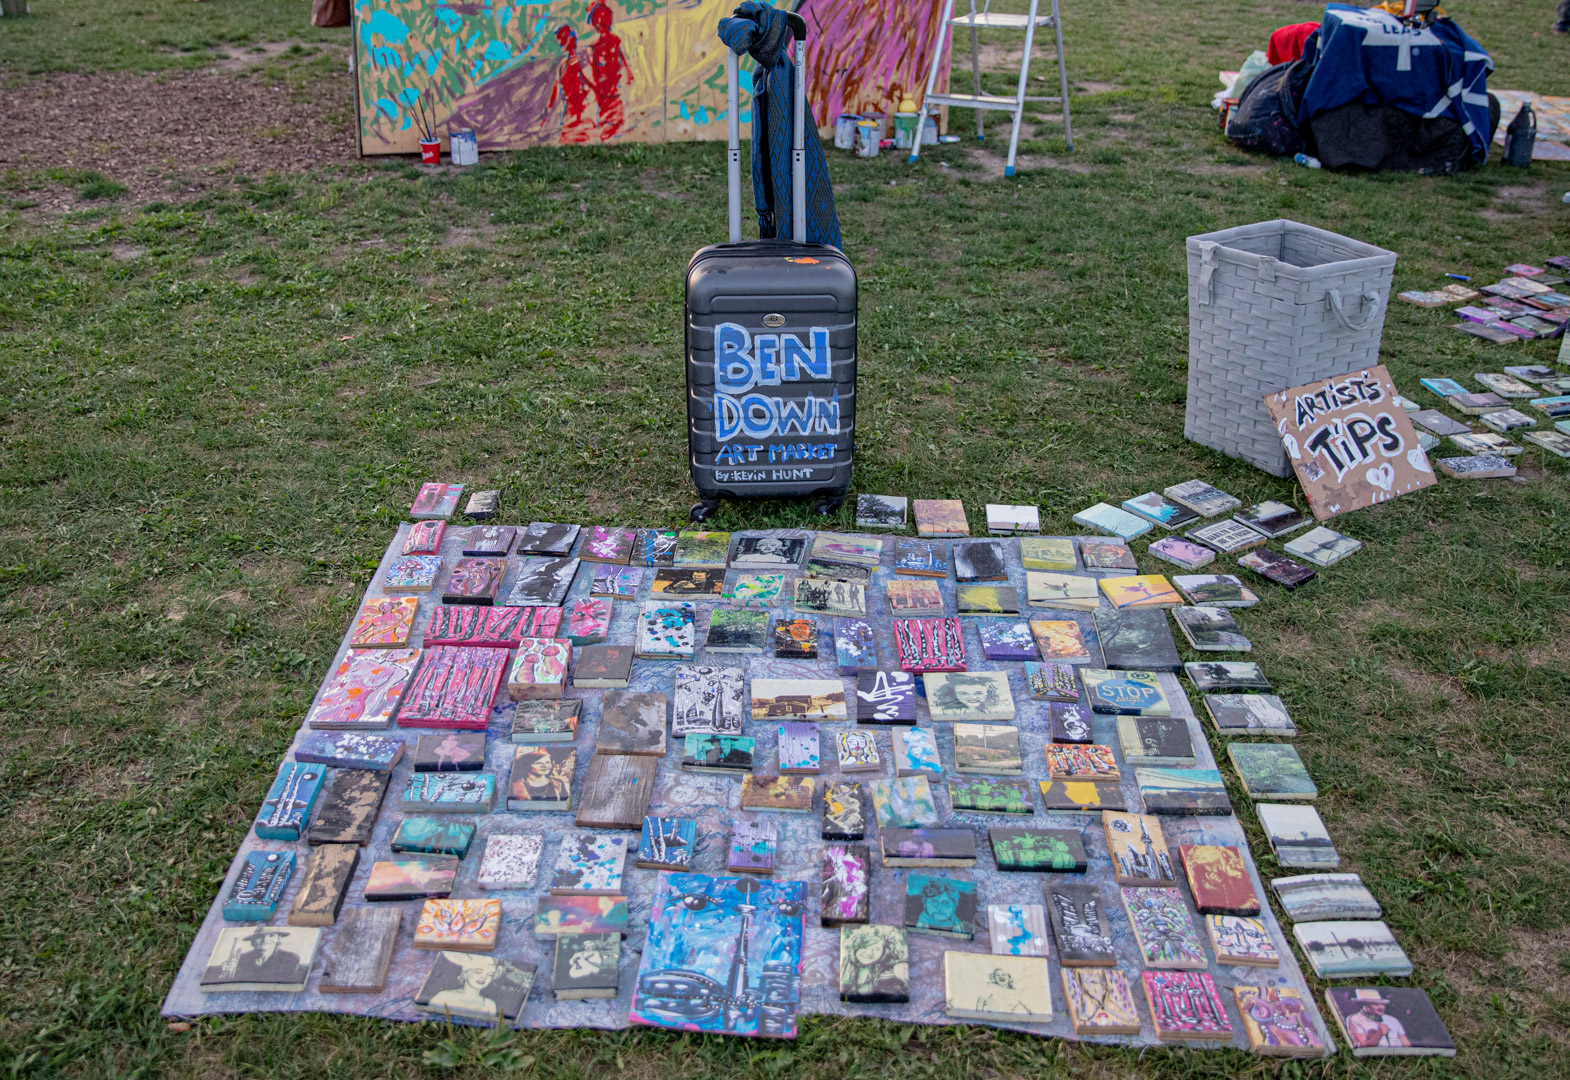 Ben Down Art Market By Kevin Hunt